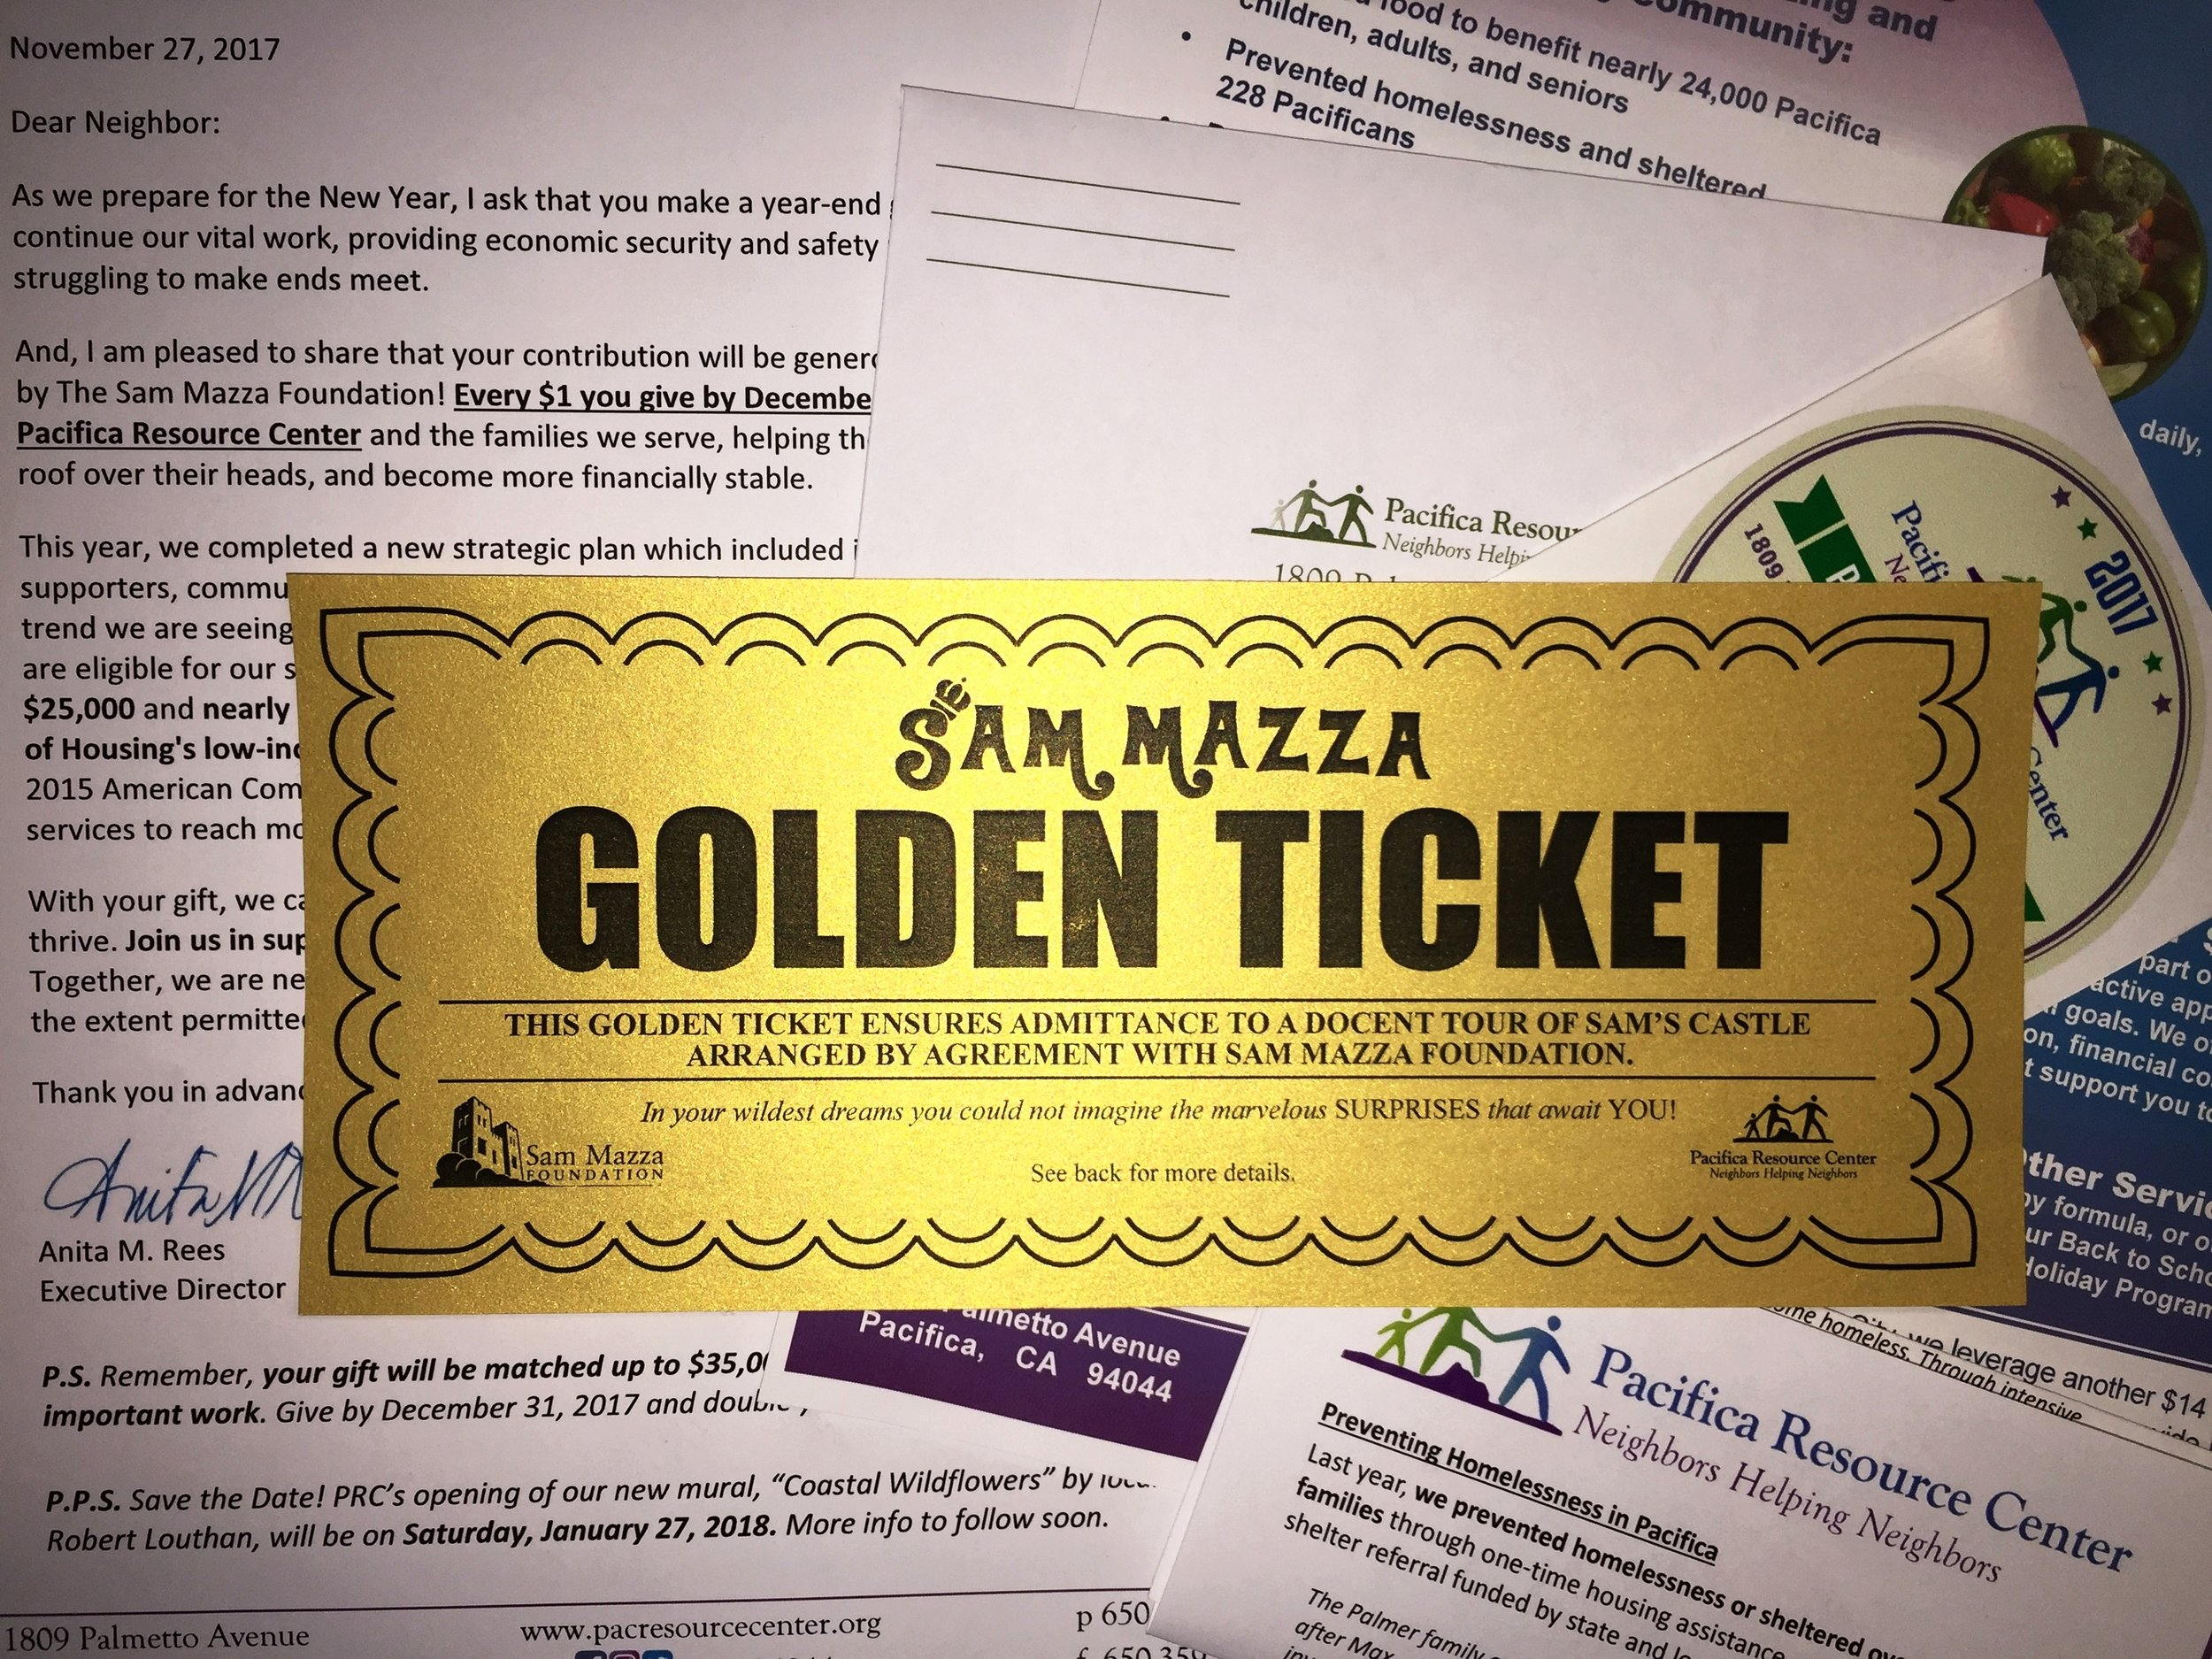 THIS GOLDEN TICKET ENSURES ADMITTANCE TO A DOCENT TOUR OF SAM'S CASTLE ARRANGED BY AGREEMENT WITH SAM MAZZA FOUNDATION. - In your wildest dreams you could not imagine the marvelous SURPRISES that await YOU!